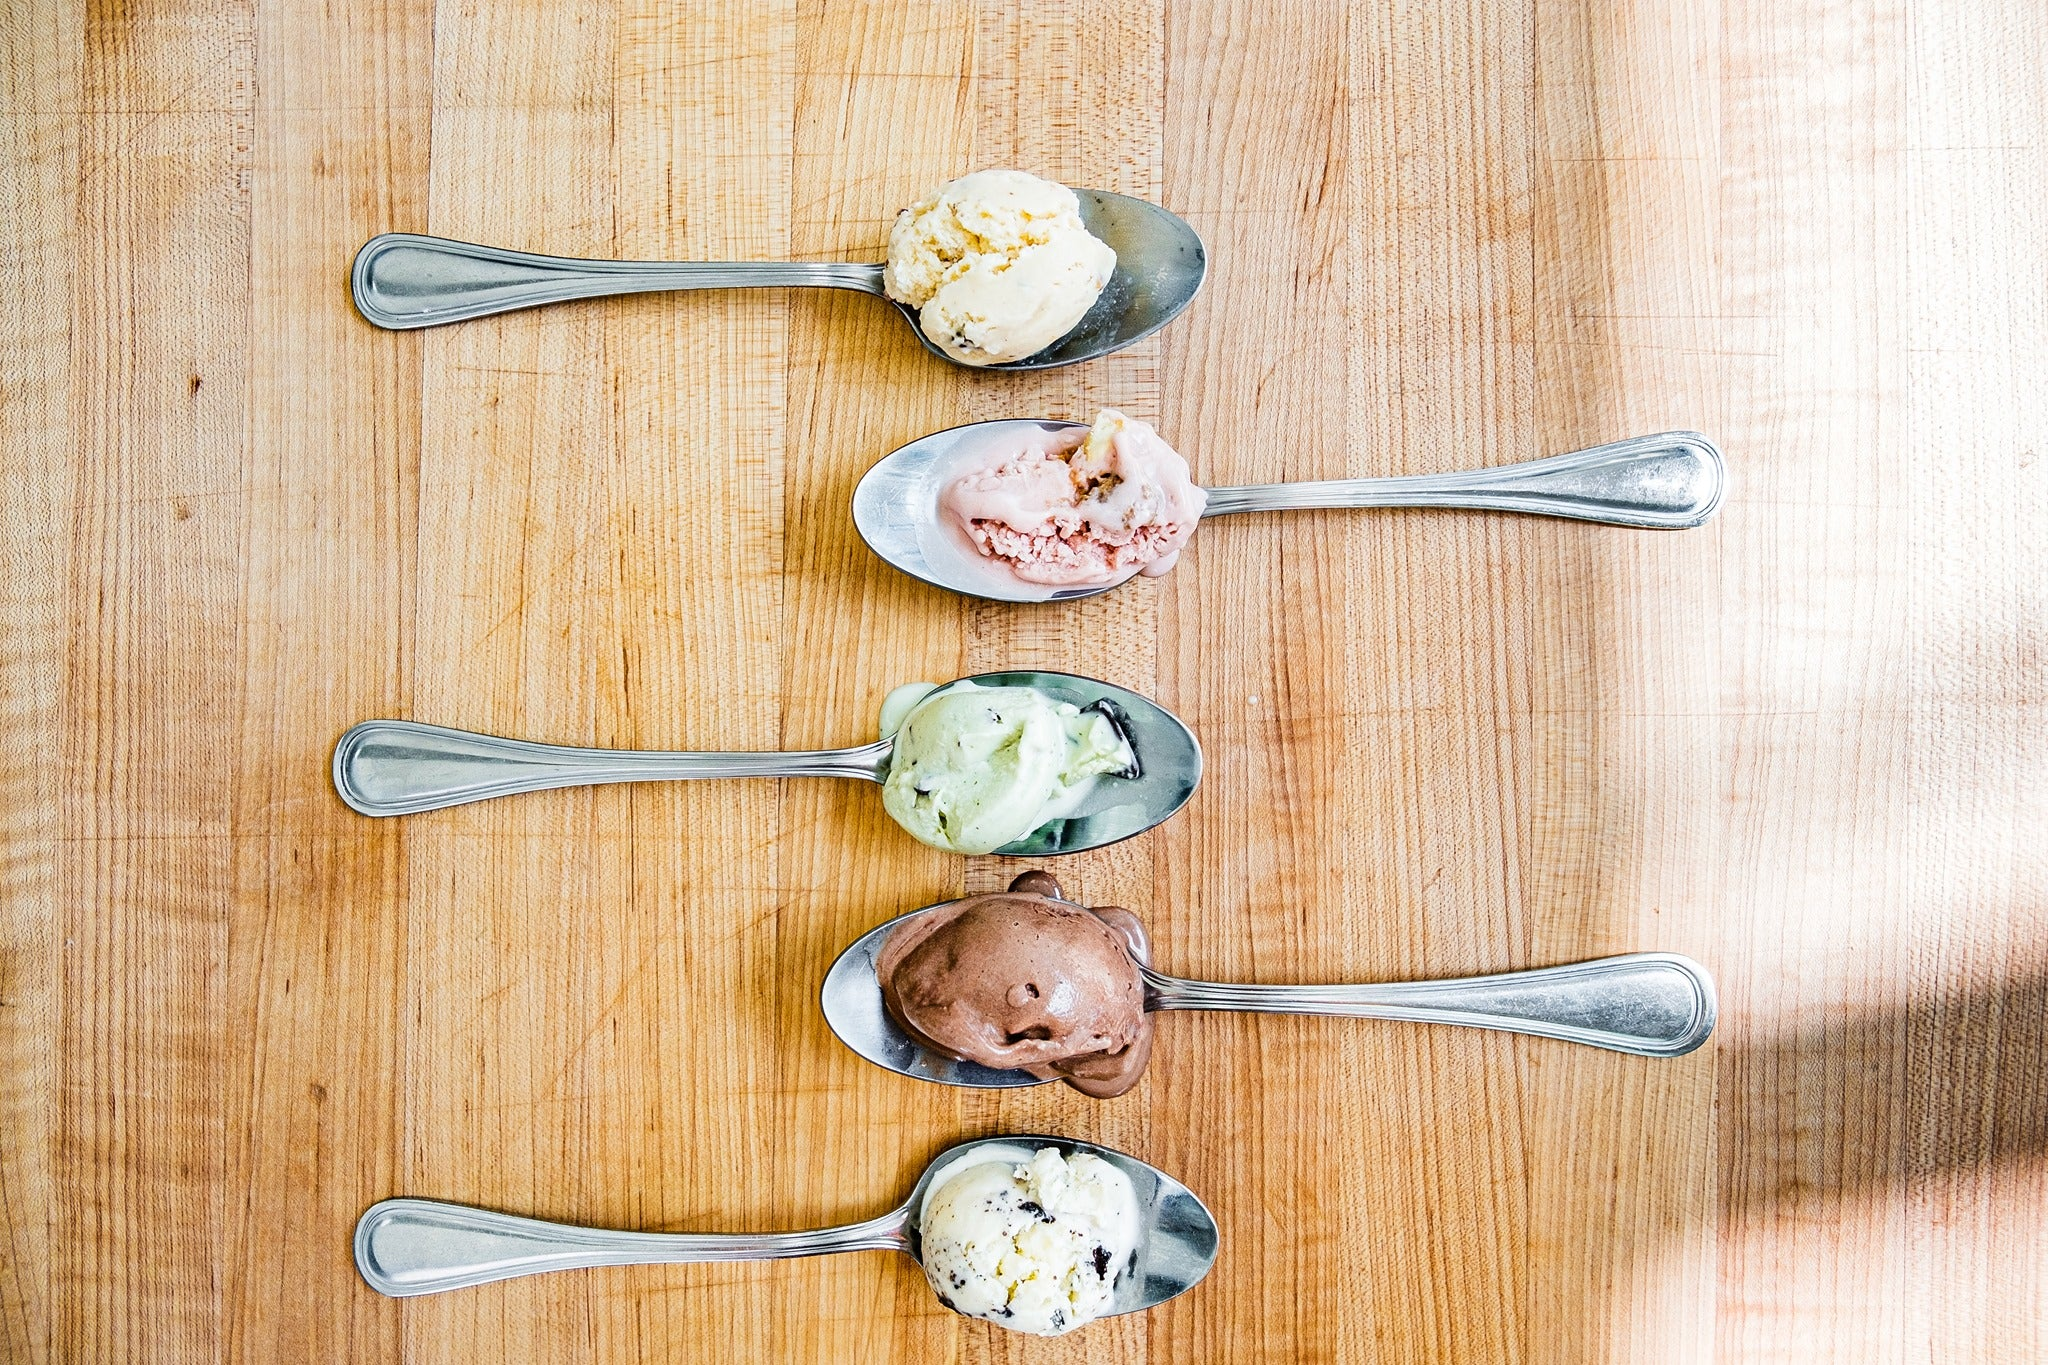 Spoons with different ice cream flavors from Mr. Trustee Creamery